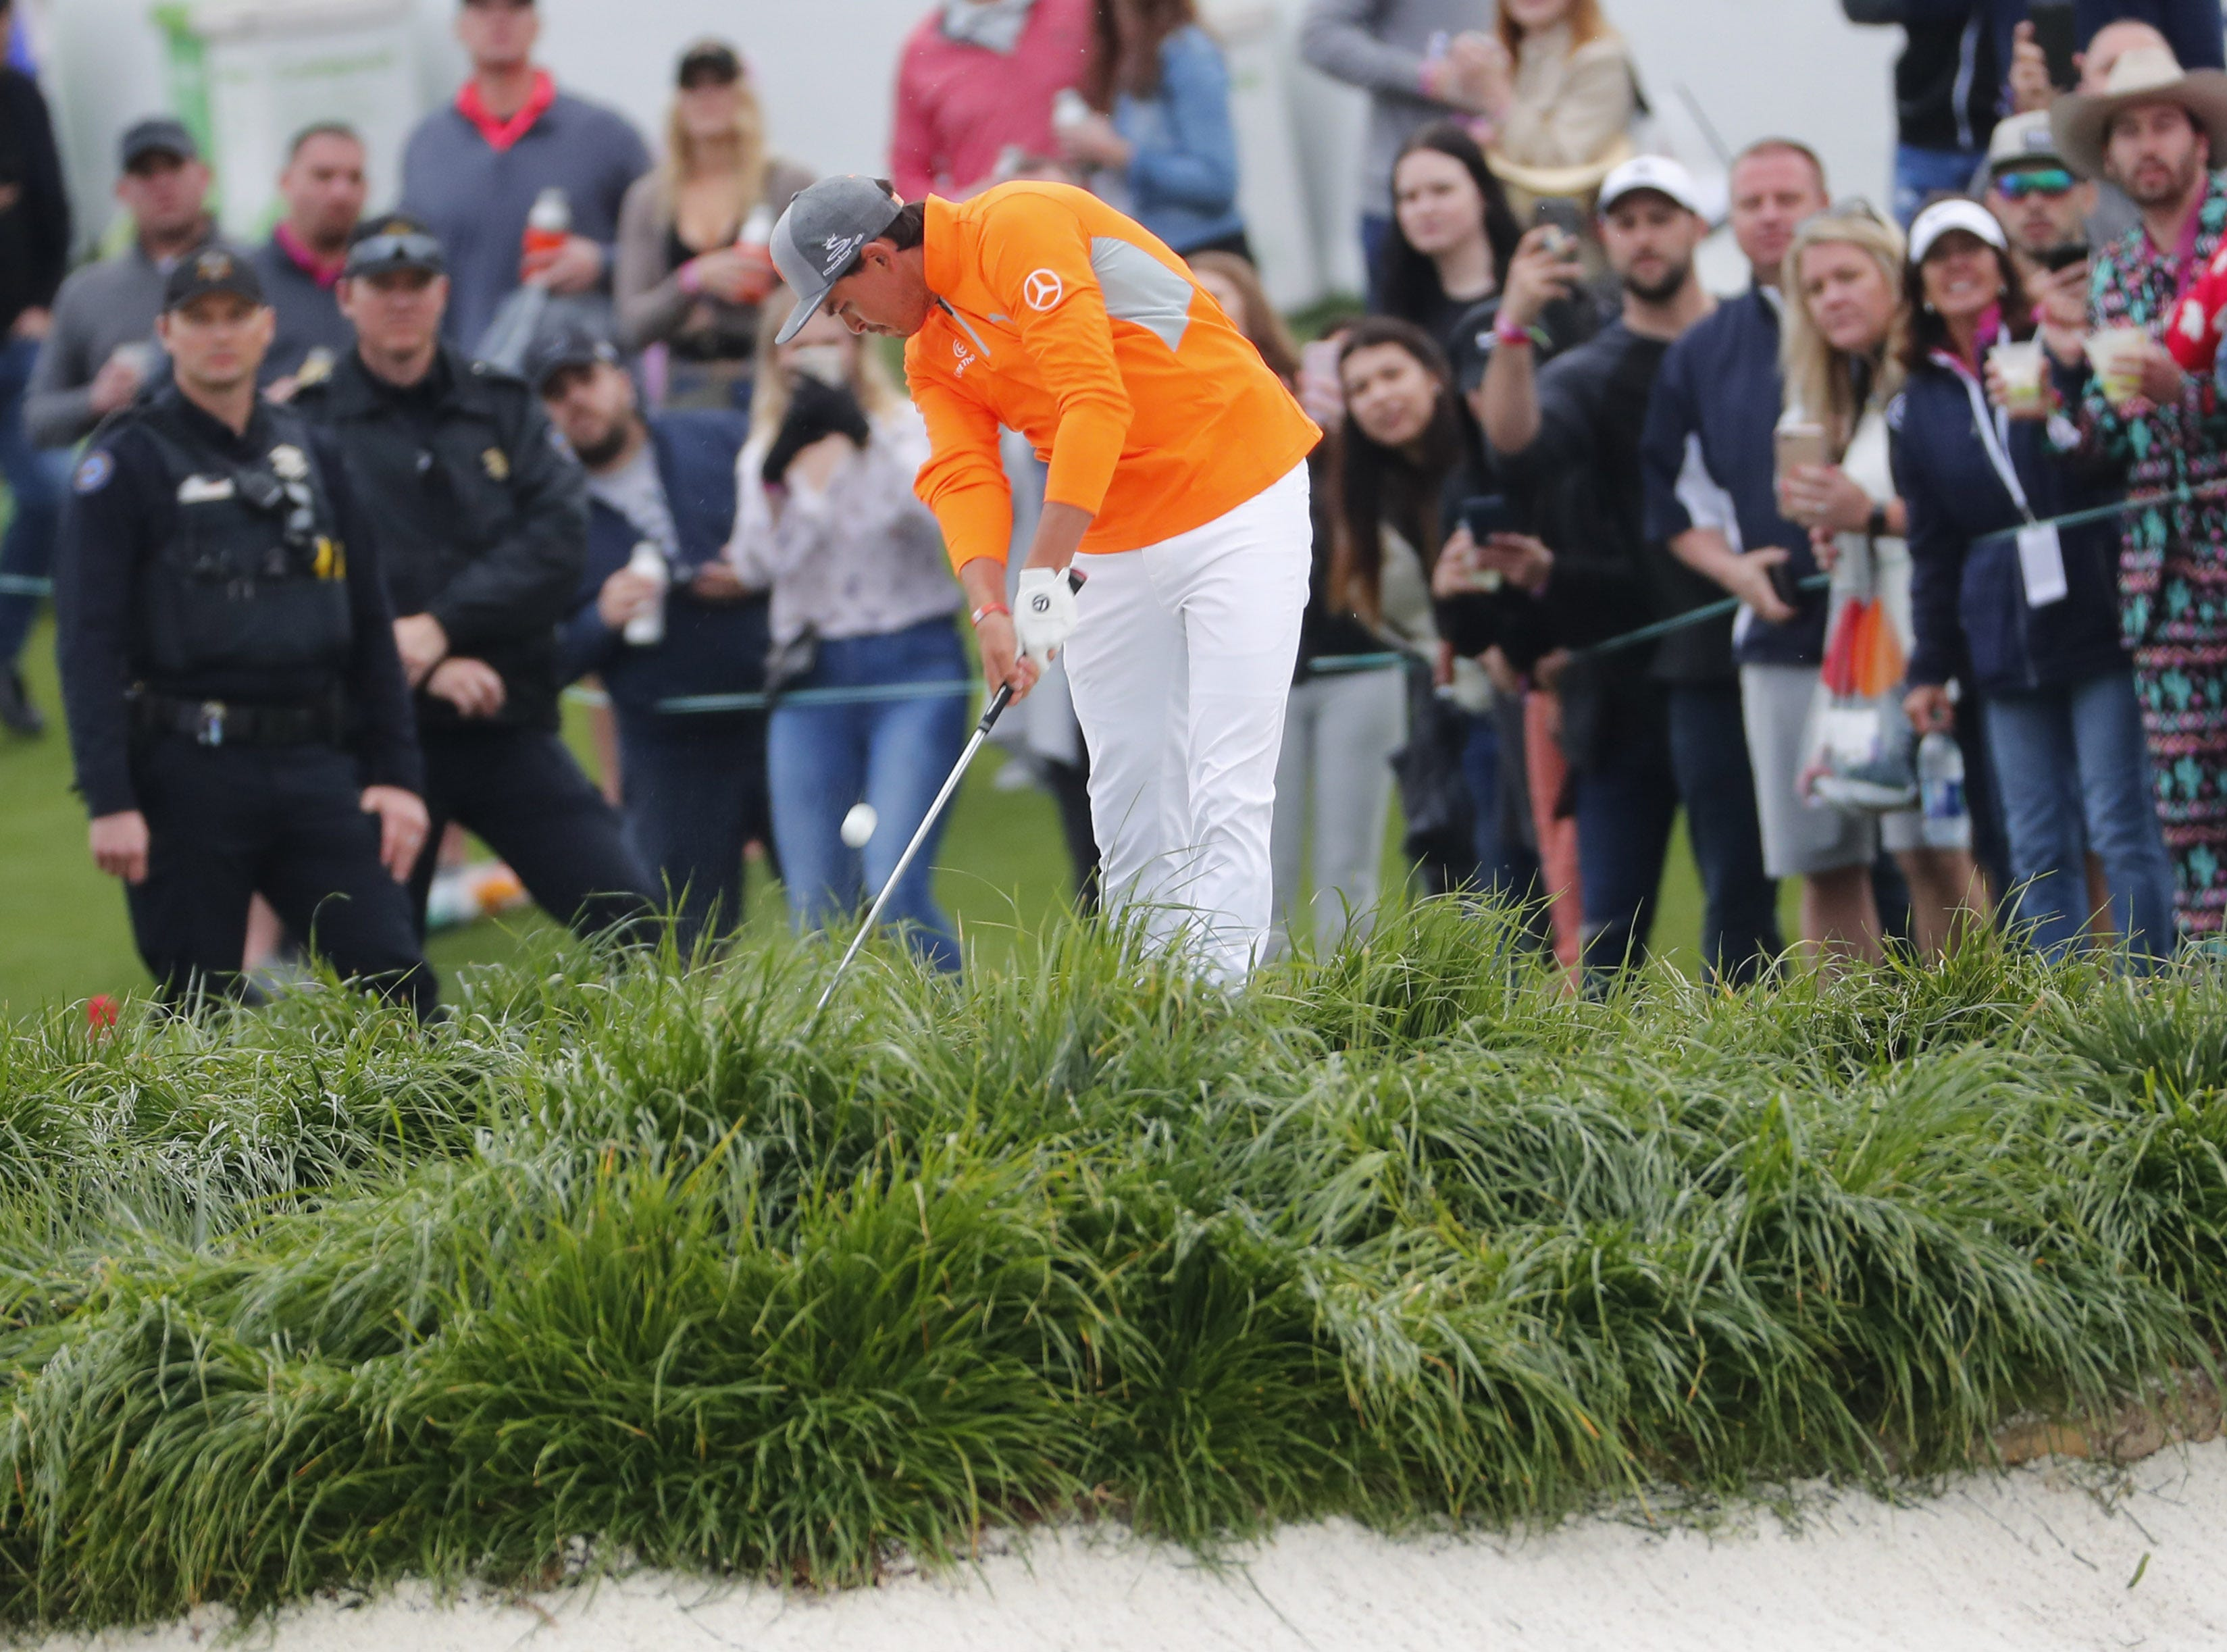 Rickie Fowler hits his second shot on the 18th hole during the final round of the Waste Management Phoenix Open at the TPC Scottsdale Feb. 3, 2019.